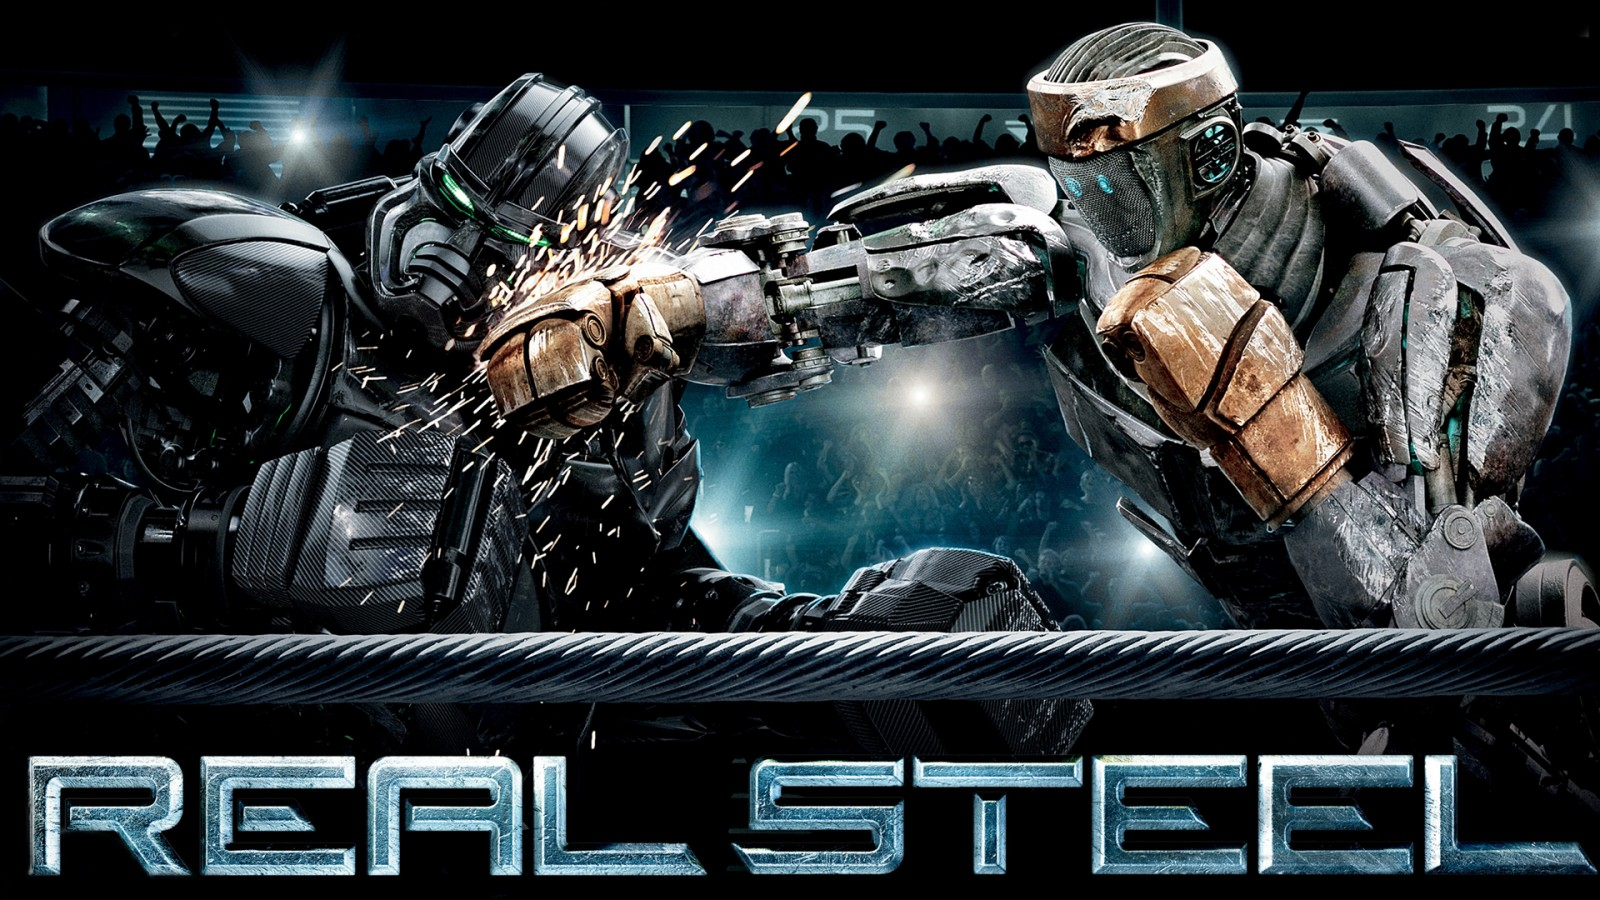 Iphone 5 Apple Logo Wallpaper Real Steel Battle Wallpapers Hd Wallpapers Id 10393